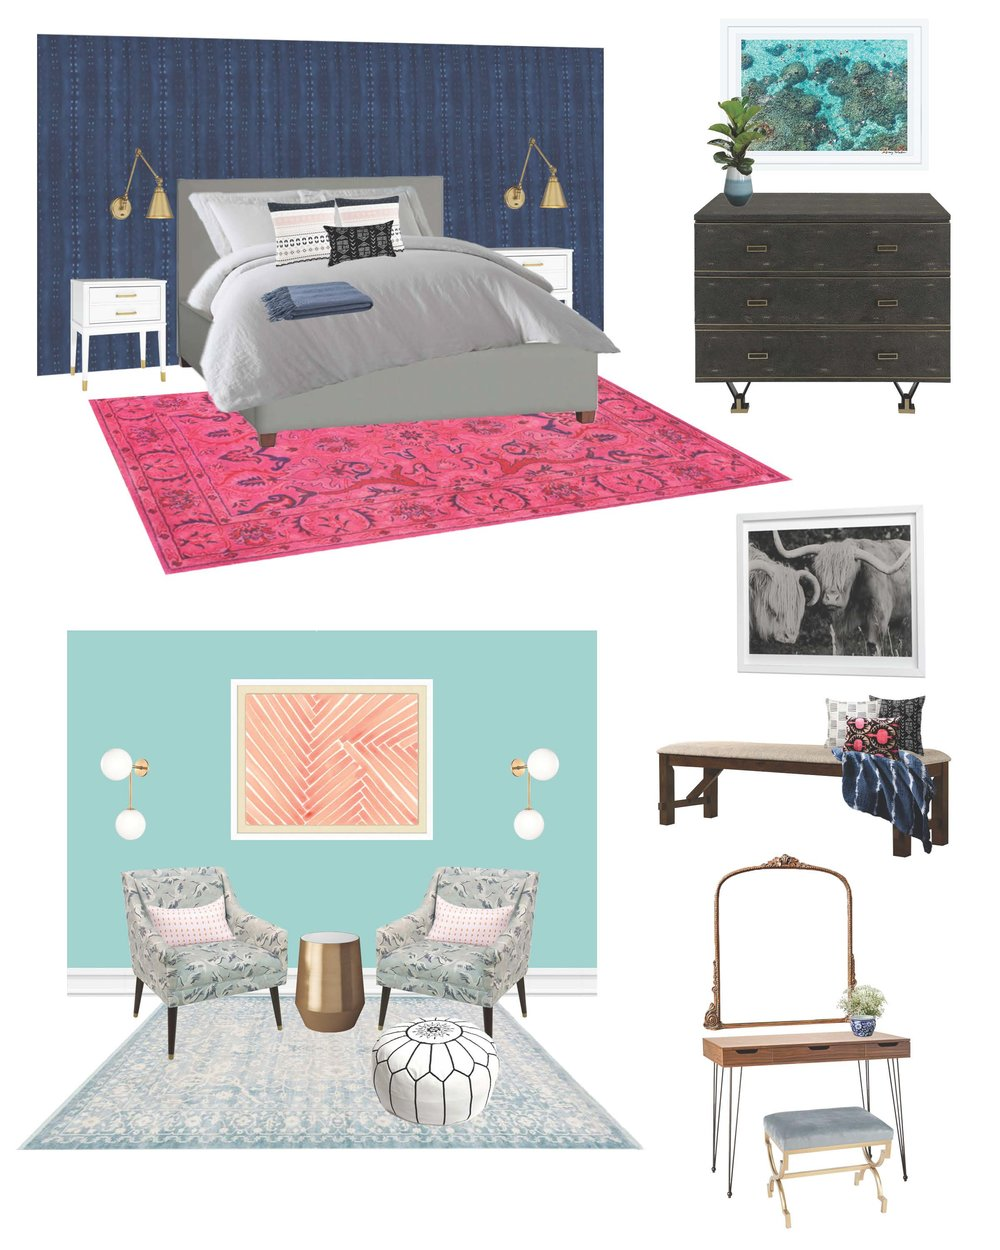 master bedroom design board 2.jpg